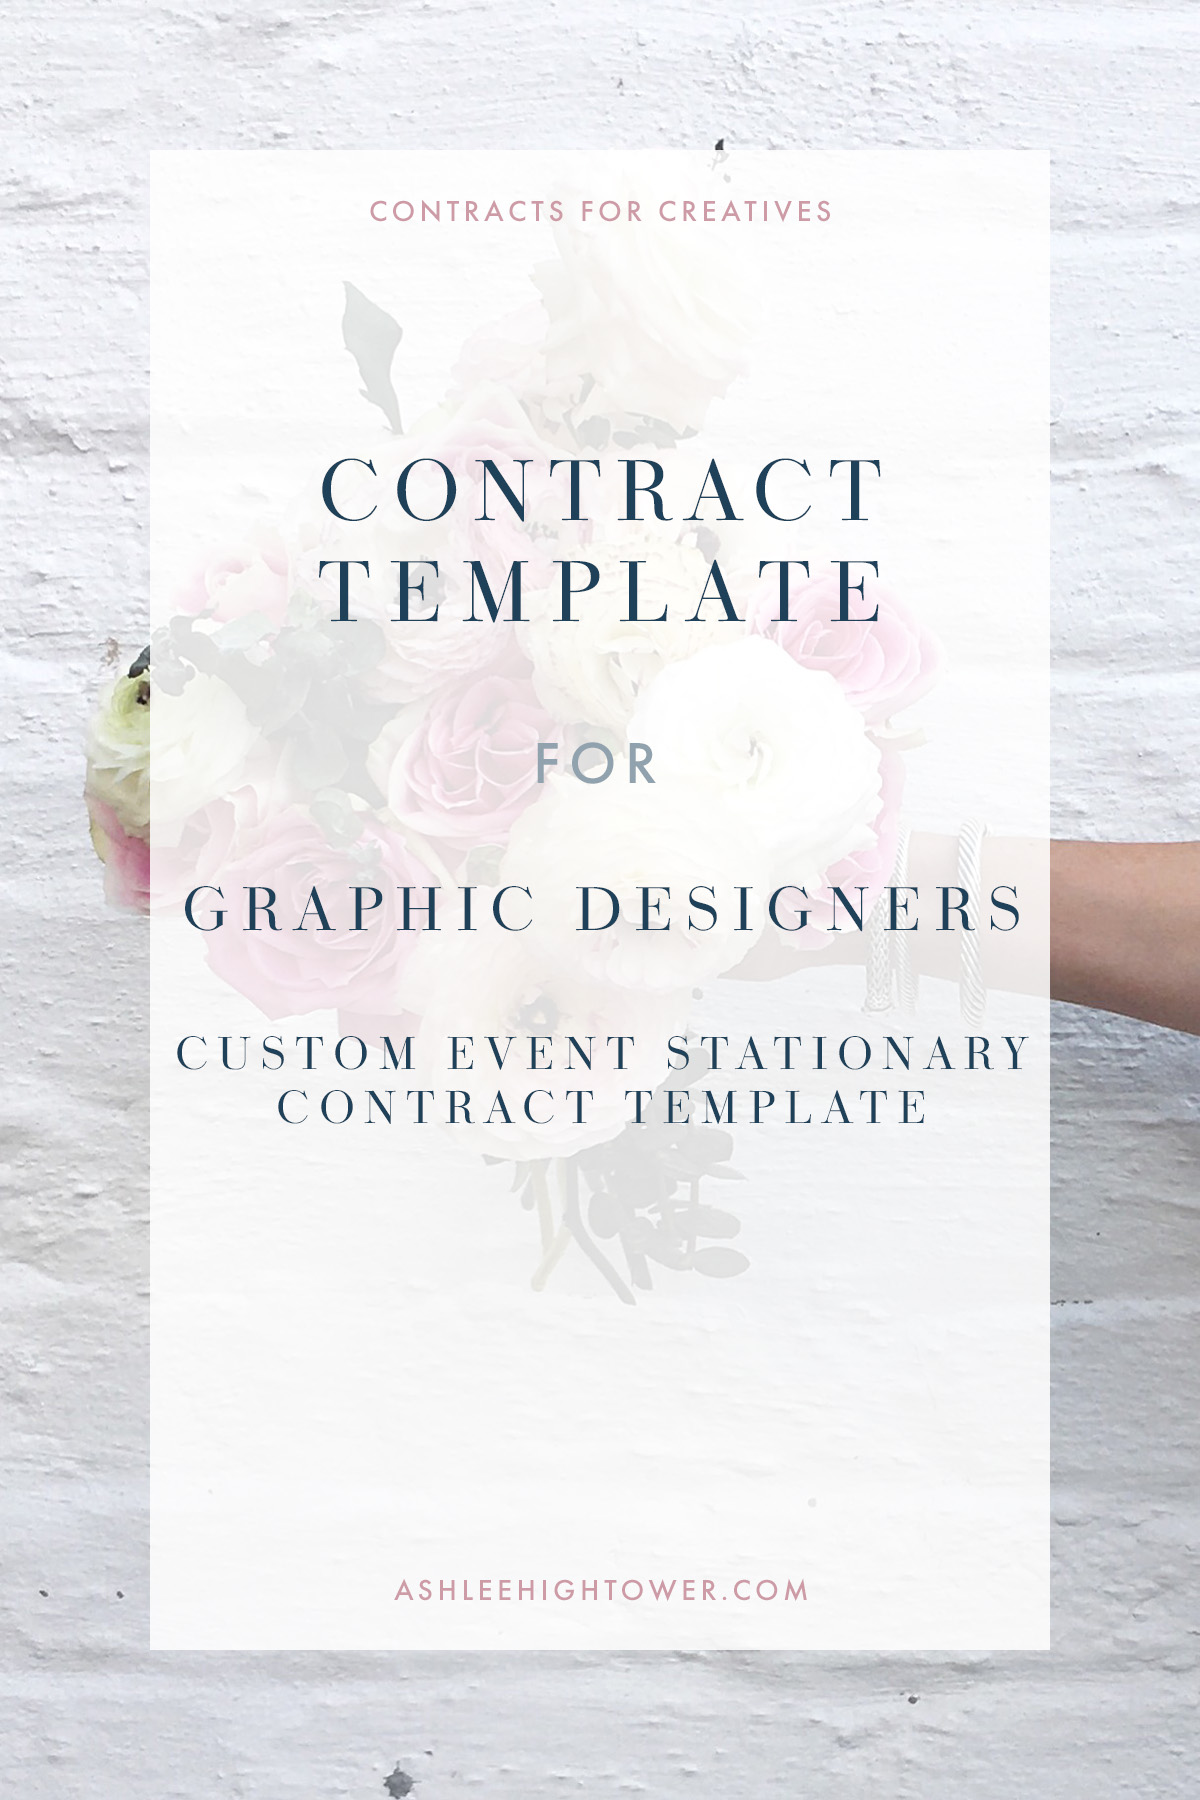 Contracts for Creatives | Custom Event Stationary Contract Template | Graphic Designer Contract | Ashlee Hightower